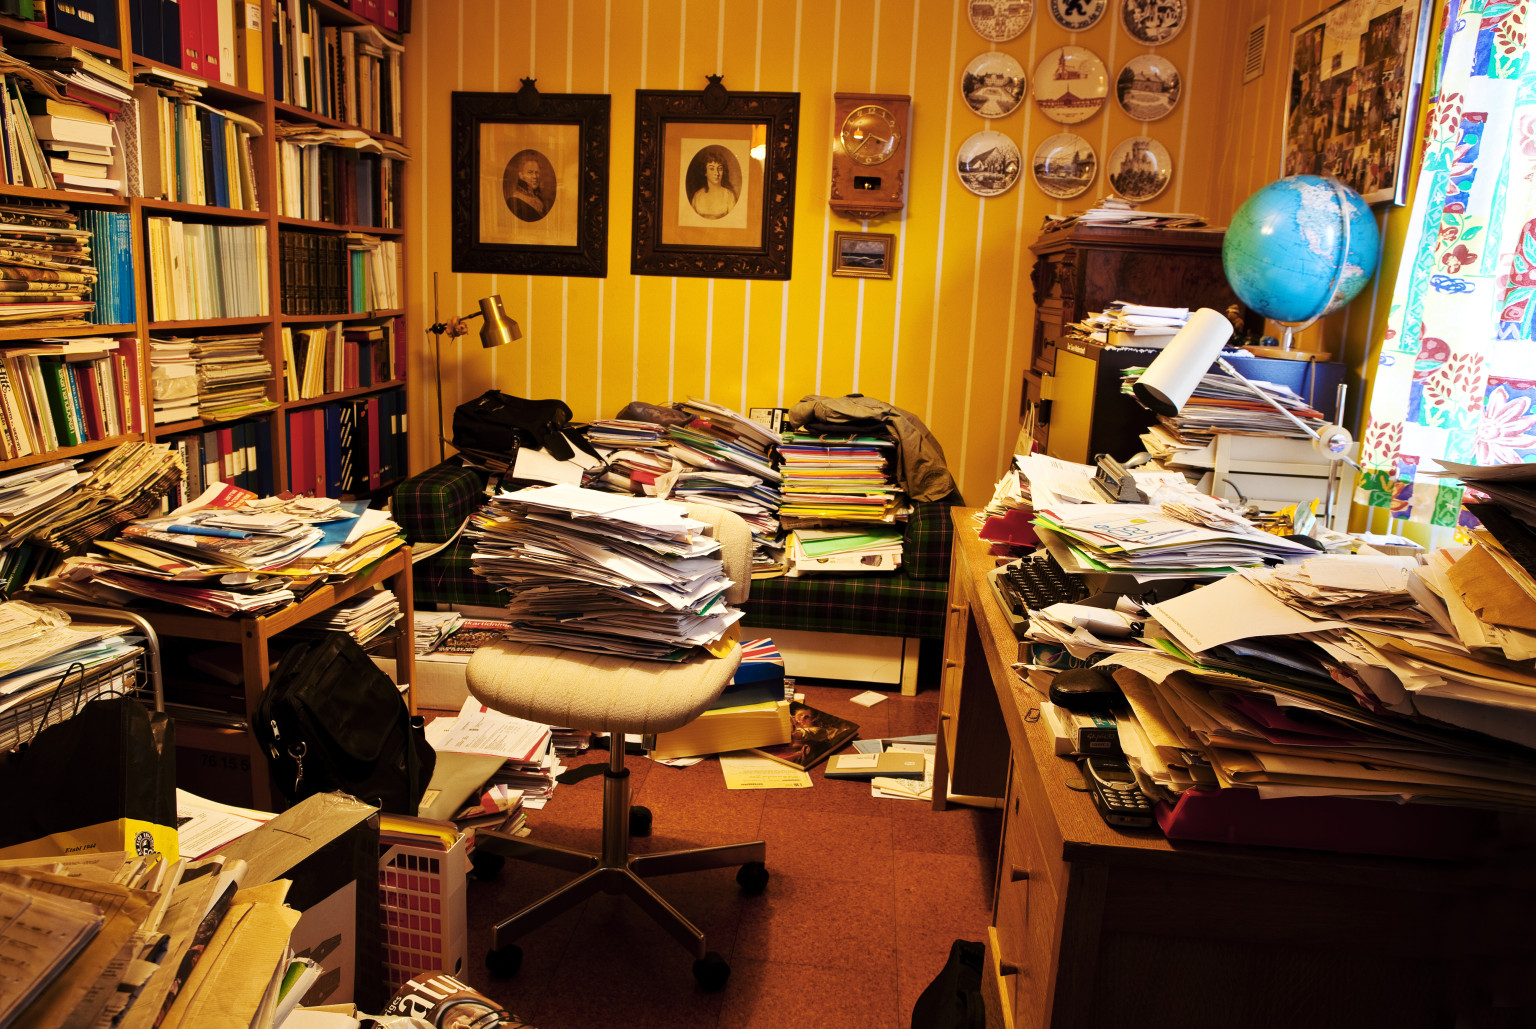 Messy Work Spaces Spur Creativity While Tidy Environments